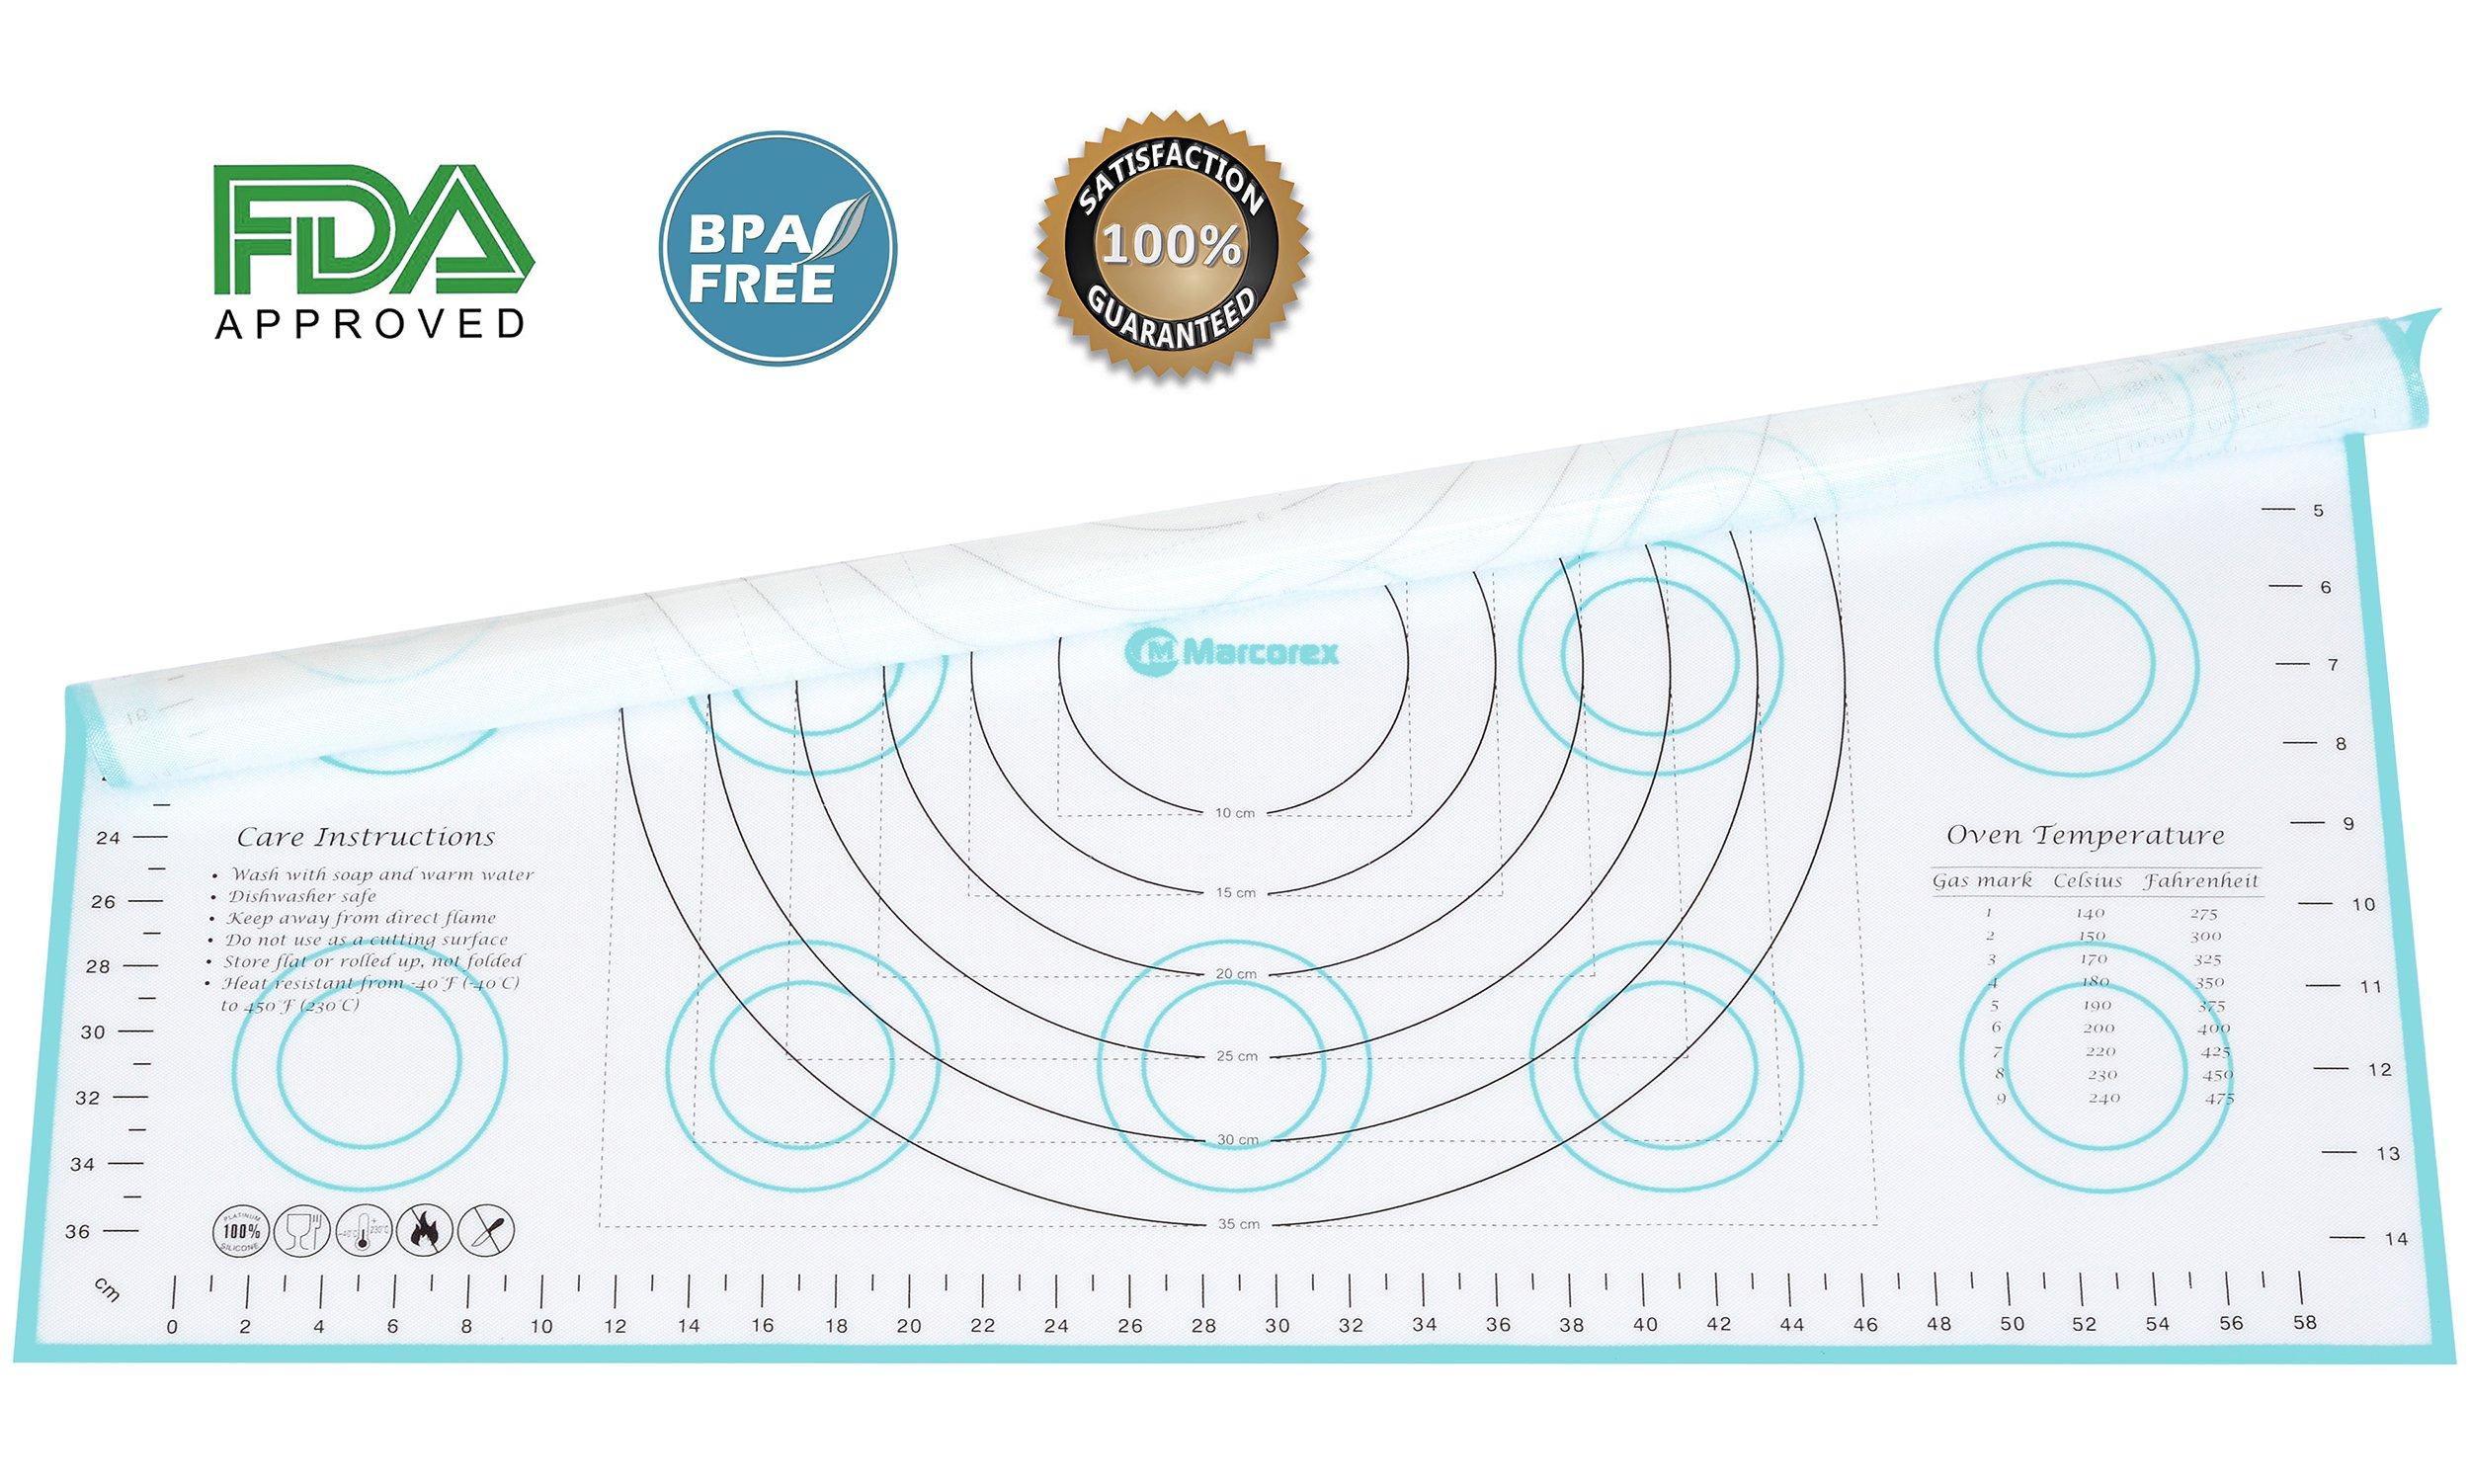 Marcorex Extra-Large Silicone Pastry Mat with Measurements and Conversion Charts, Non-Stick Non-Slip, Fondant Mat, Cookie Rolling Dough Mat (X-Large (26'' x 17''), Blue) by Marcorex (Image #4)